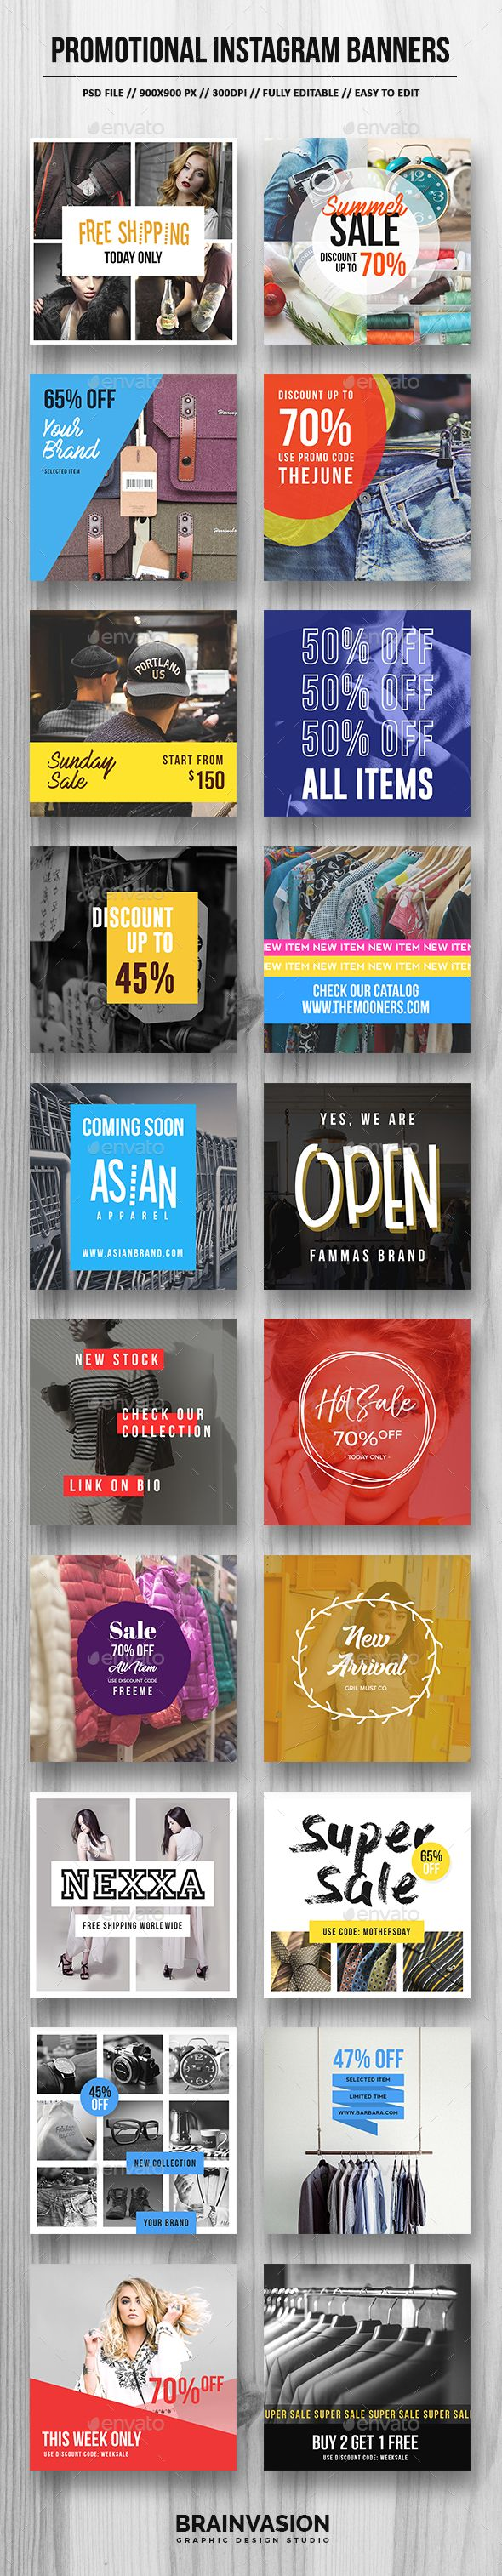 Promotional Instagram Banner Templates PSD